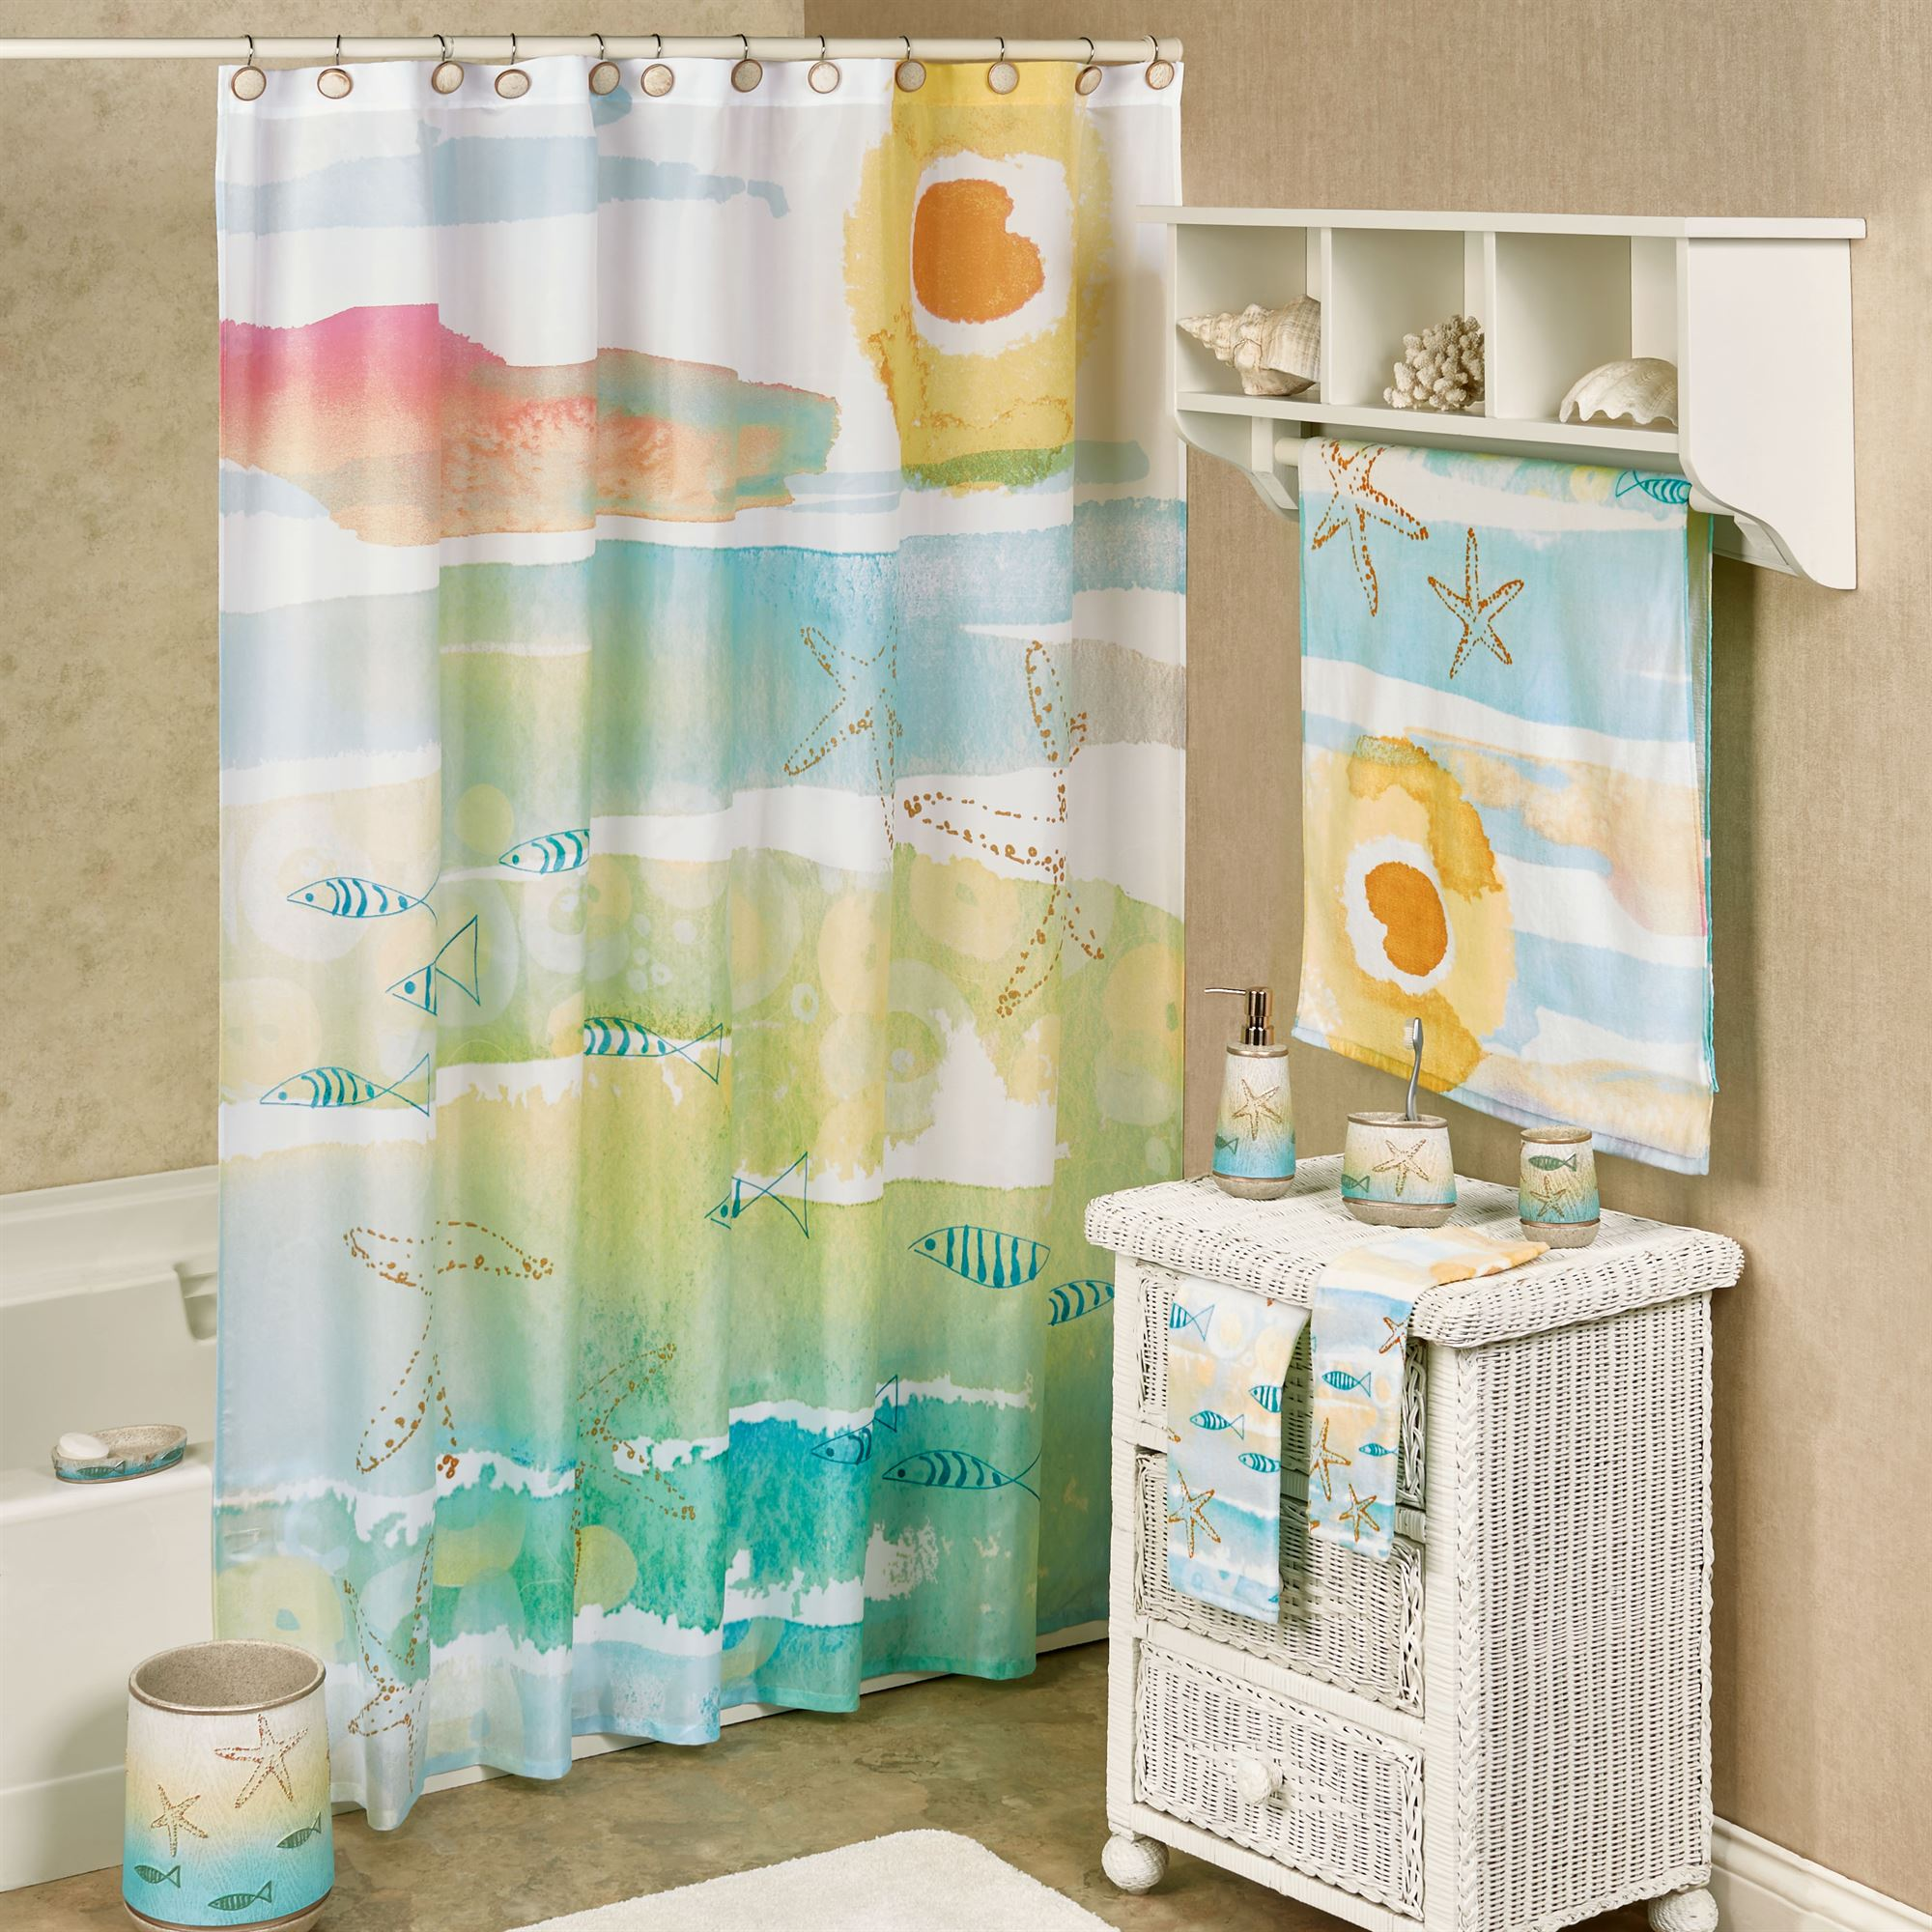 By The Sea Coastal Shower Curtain Multi Bright 72 X